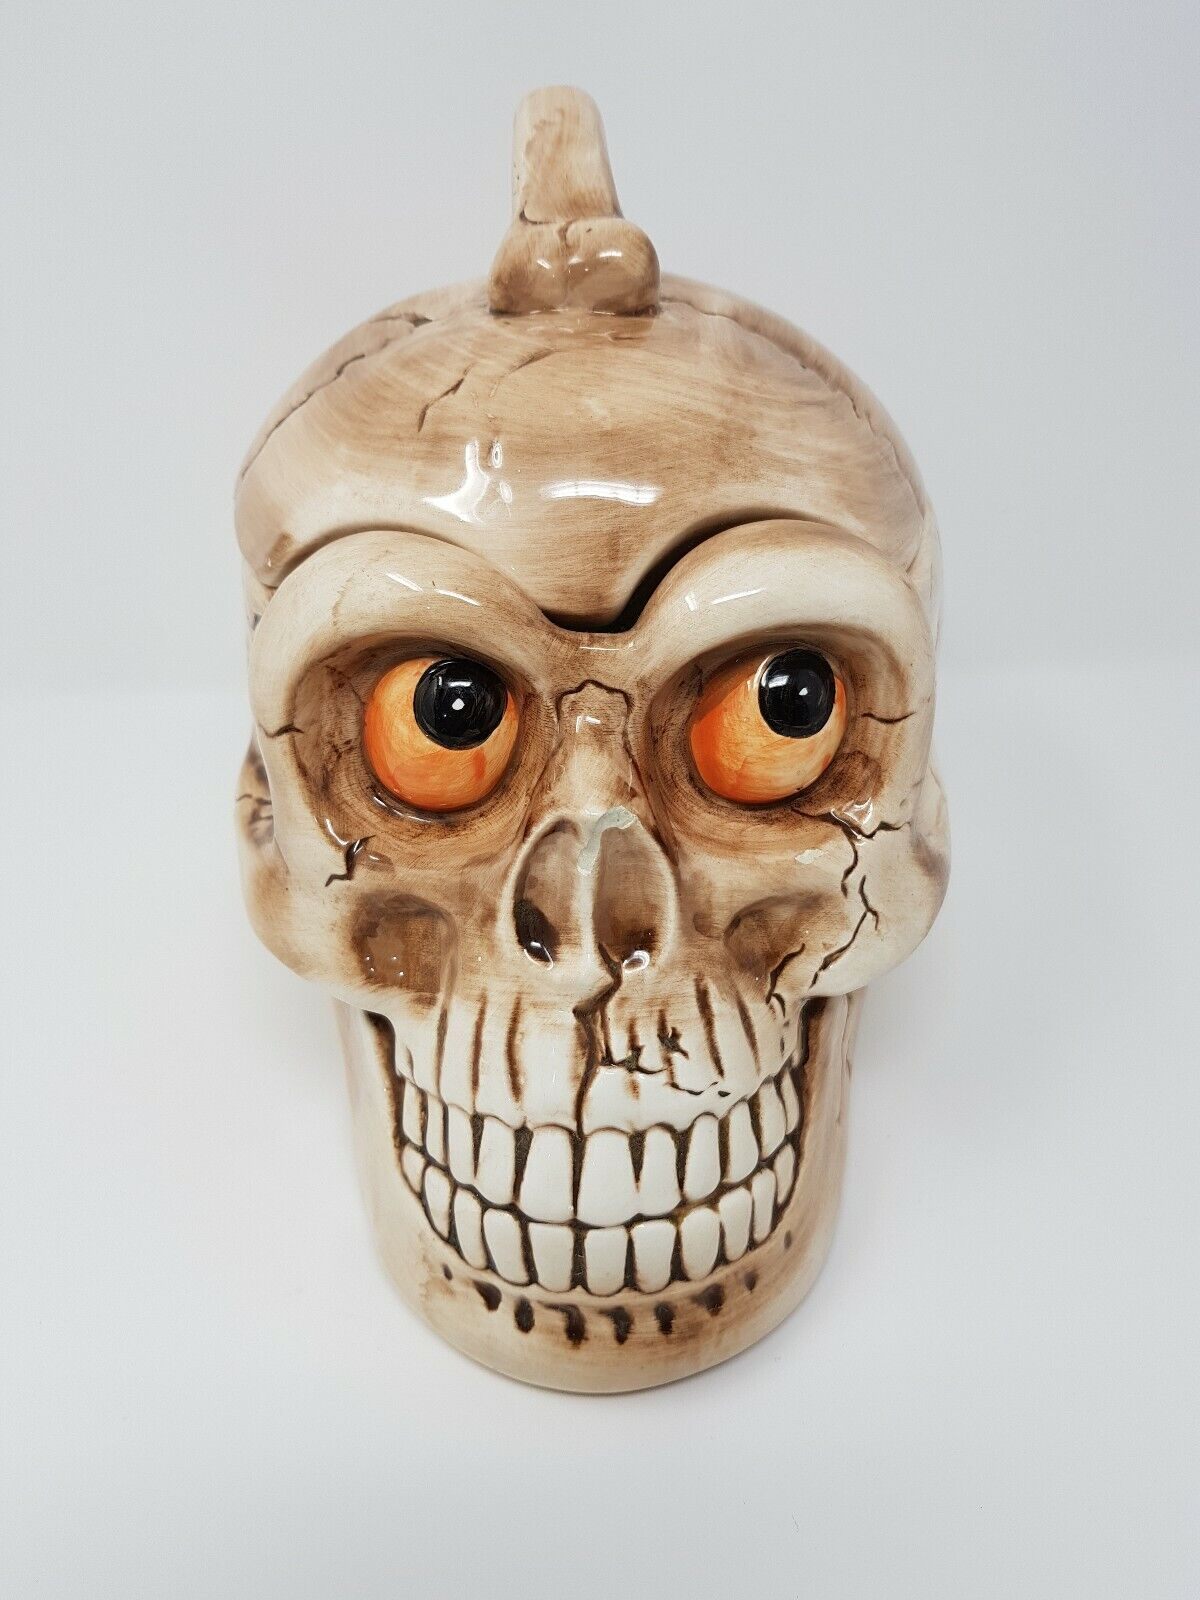 Vintage Enesco Skull Head Cookie Jar Sugar Bowl Mark Cook RARE FUN WEIRD 1990